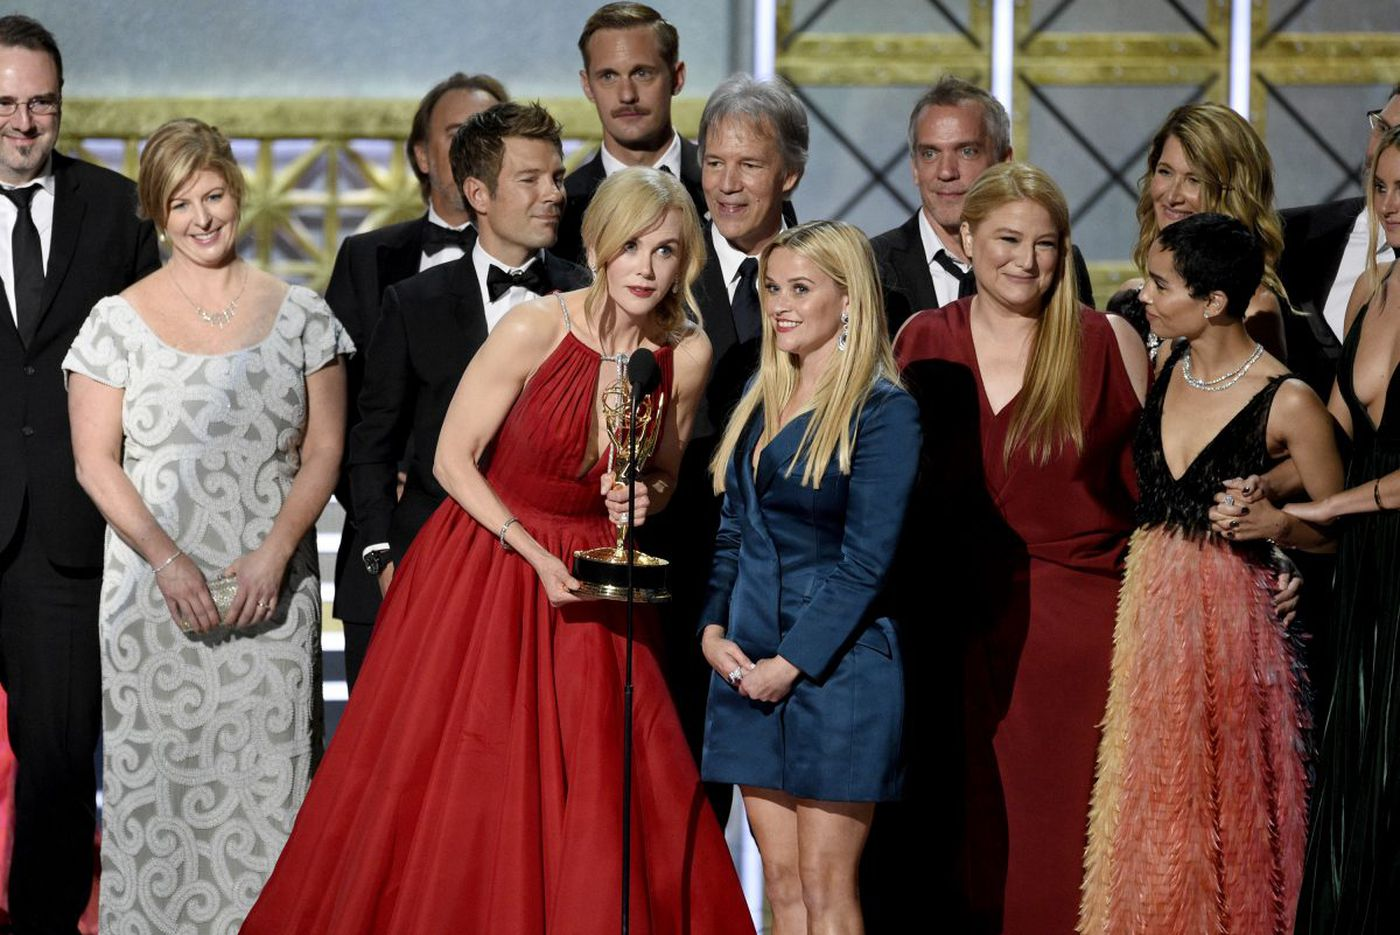 'Big Little Lies,' 'Game of Thrones' and #MeToo: Why TV's focus on abuse should be only the first step